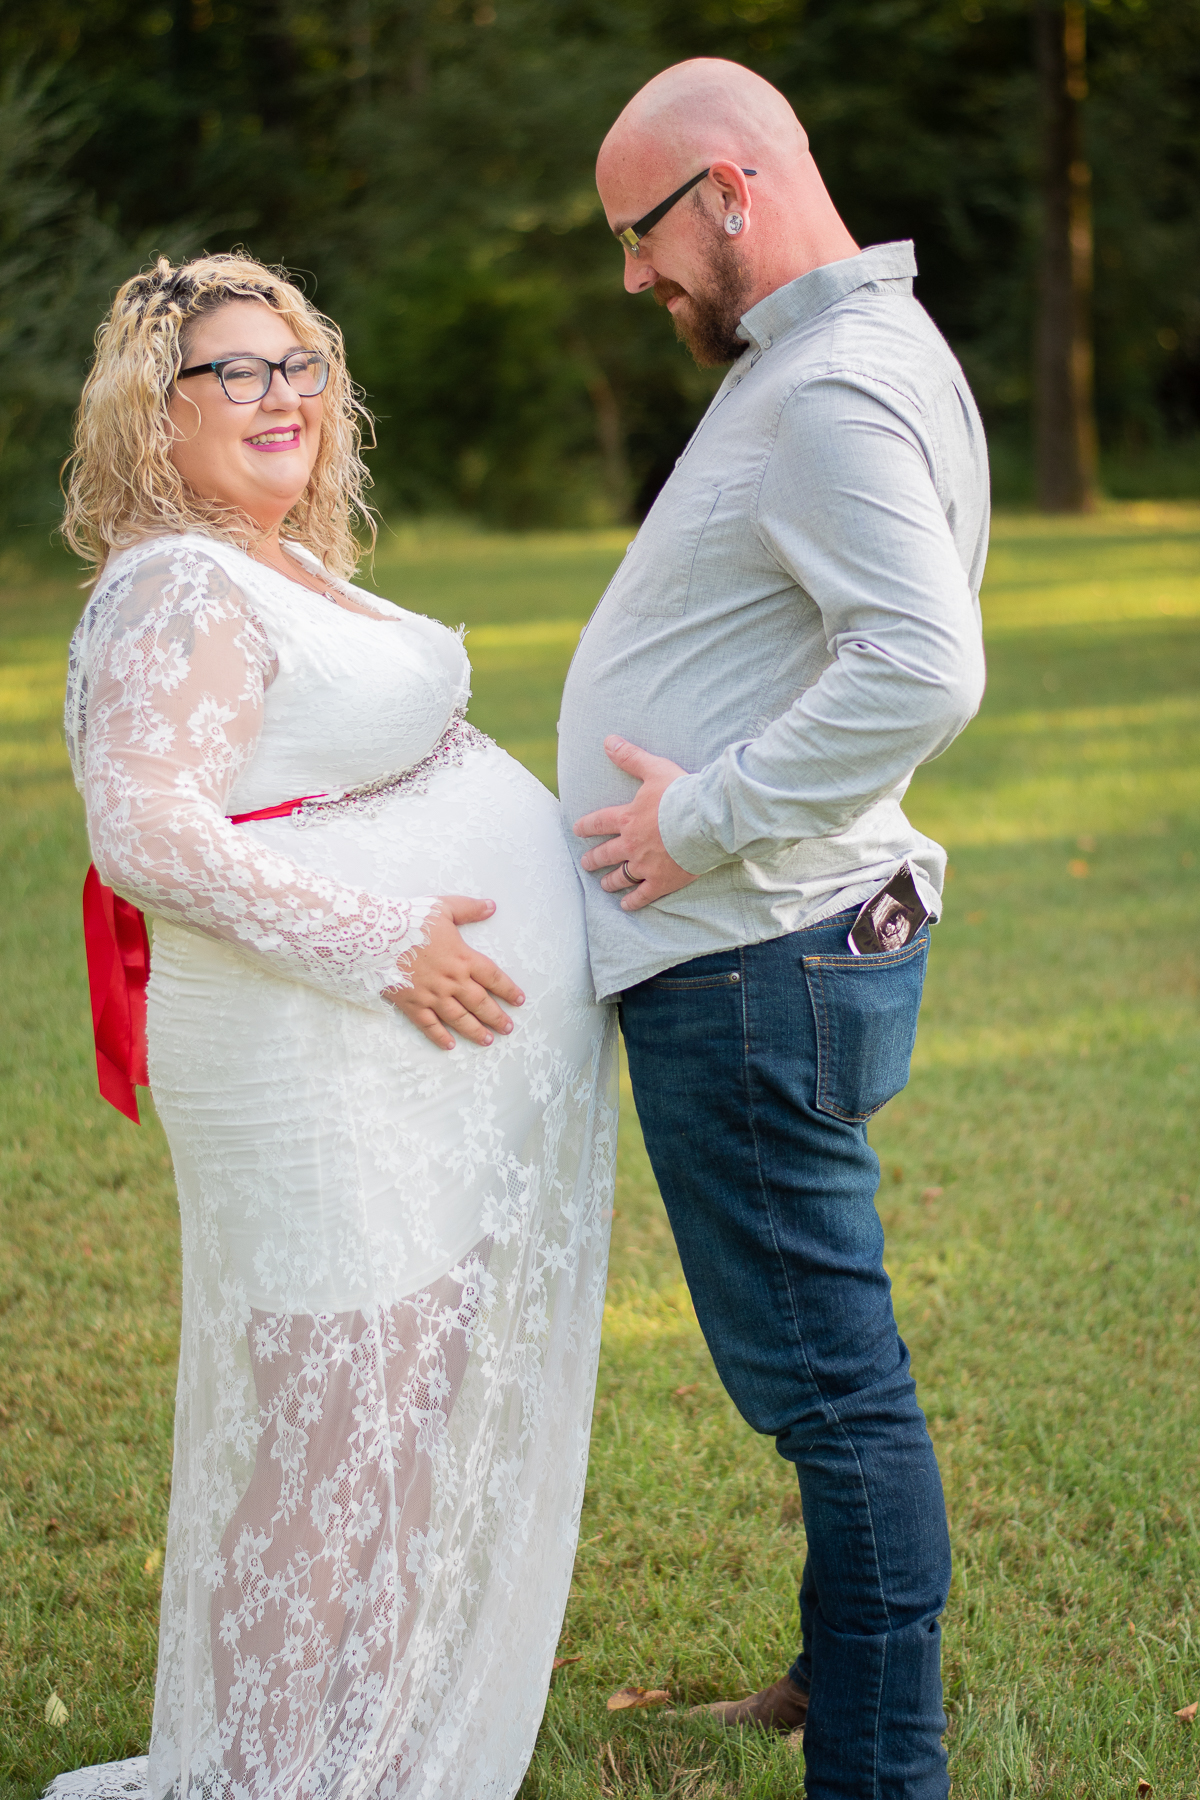 Maternity Photo Session, Spring Creek Park – Tomball, Tx | Rachel + Chad